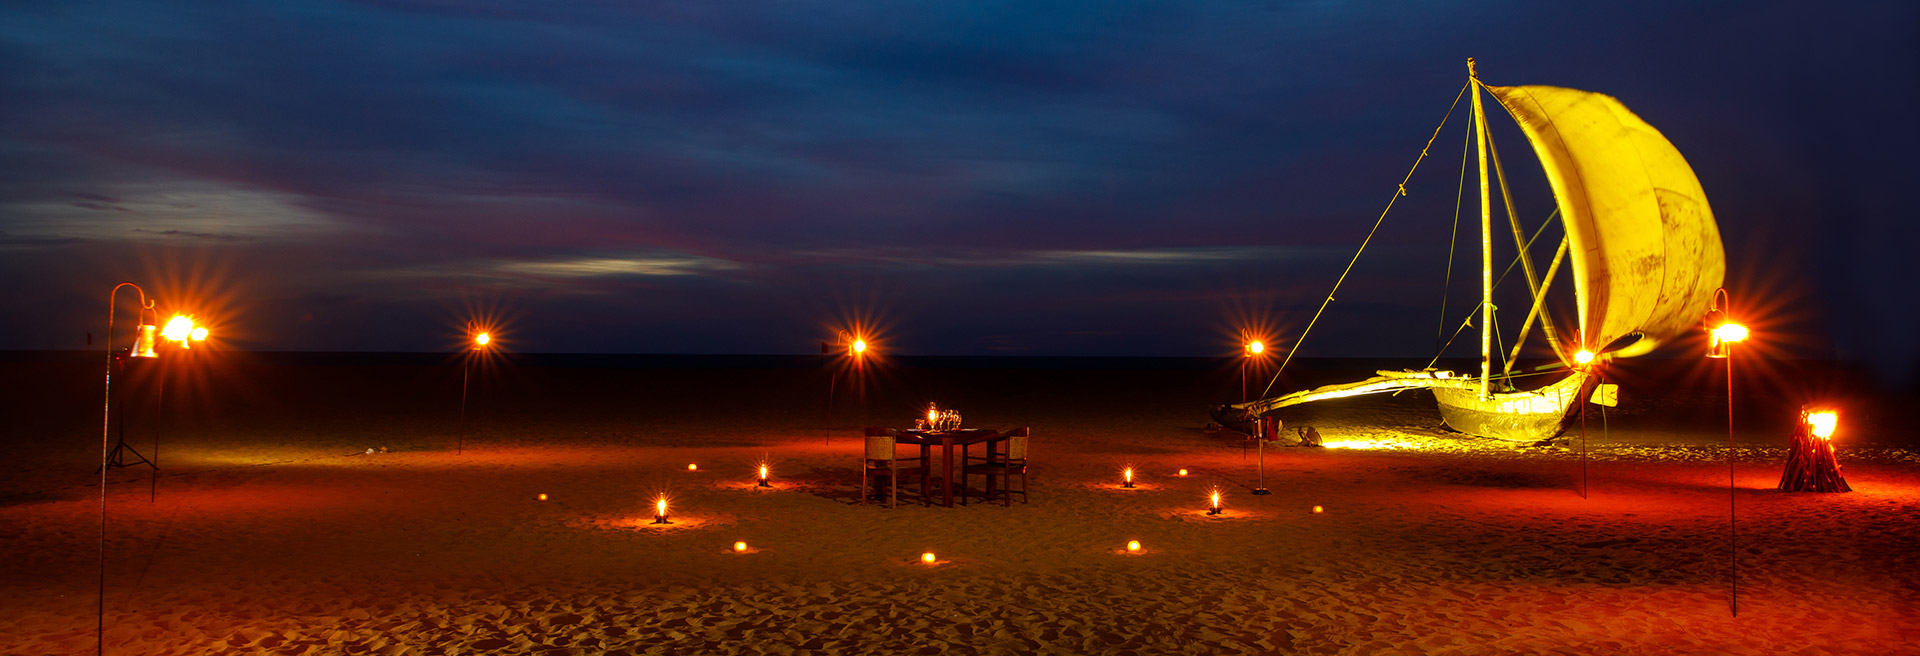 Romantic private dinner on the beach